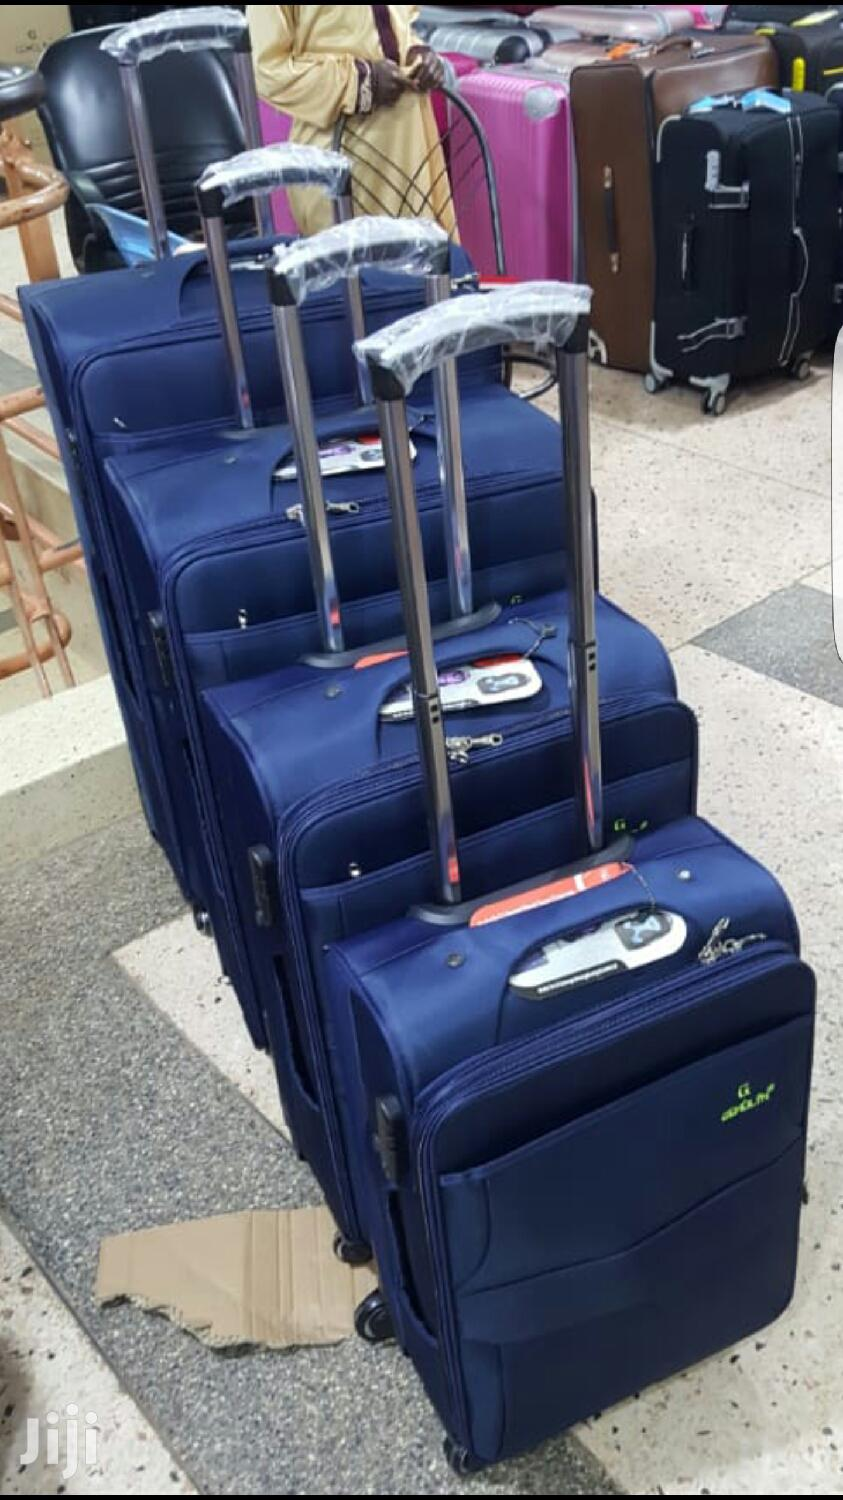 Best Travel Suite Case Bags #Set of 4 in 1 #Sale in Pieces